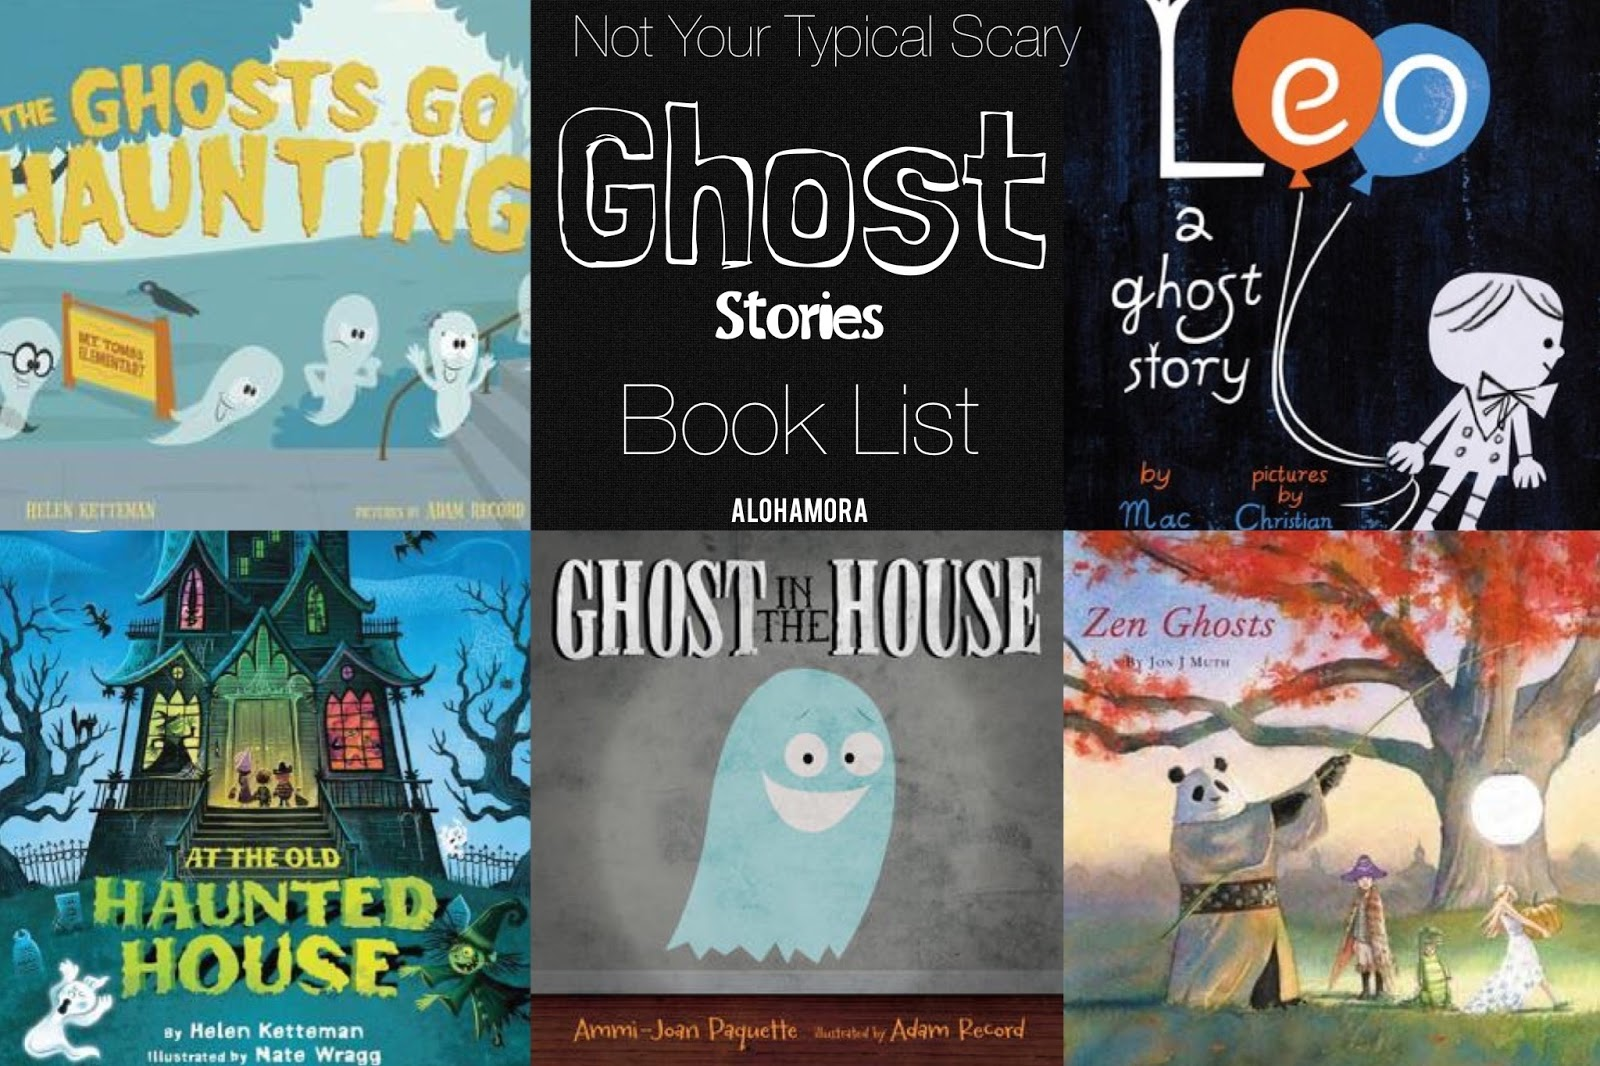 not your tupical or scary even ghost stories picture book list these 5 books - Christian Halloween Stories